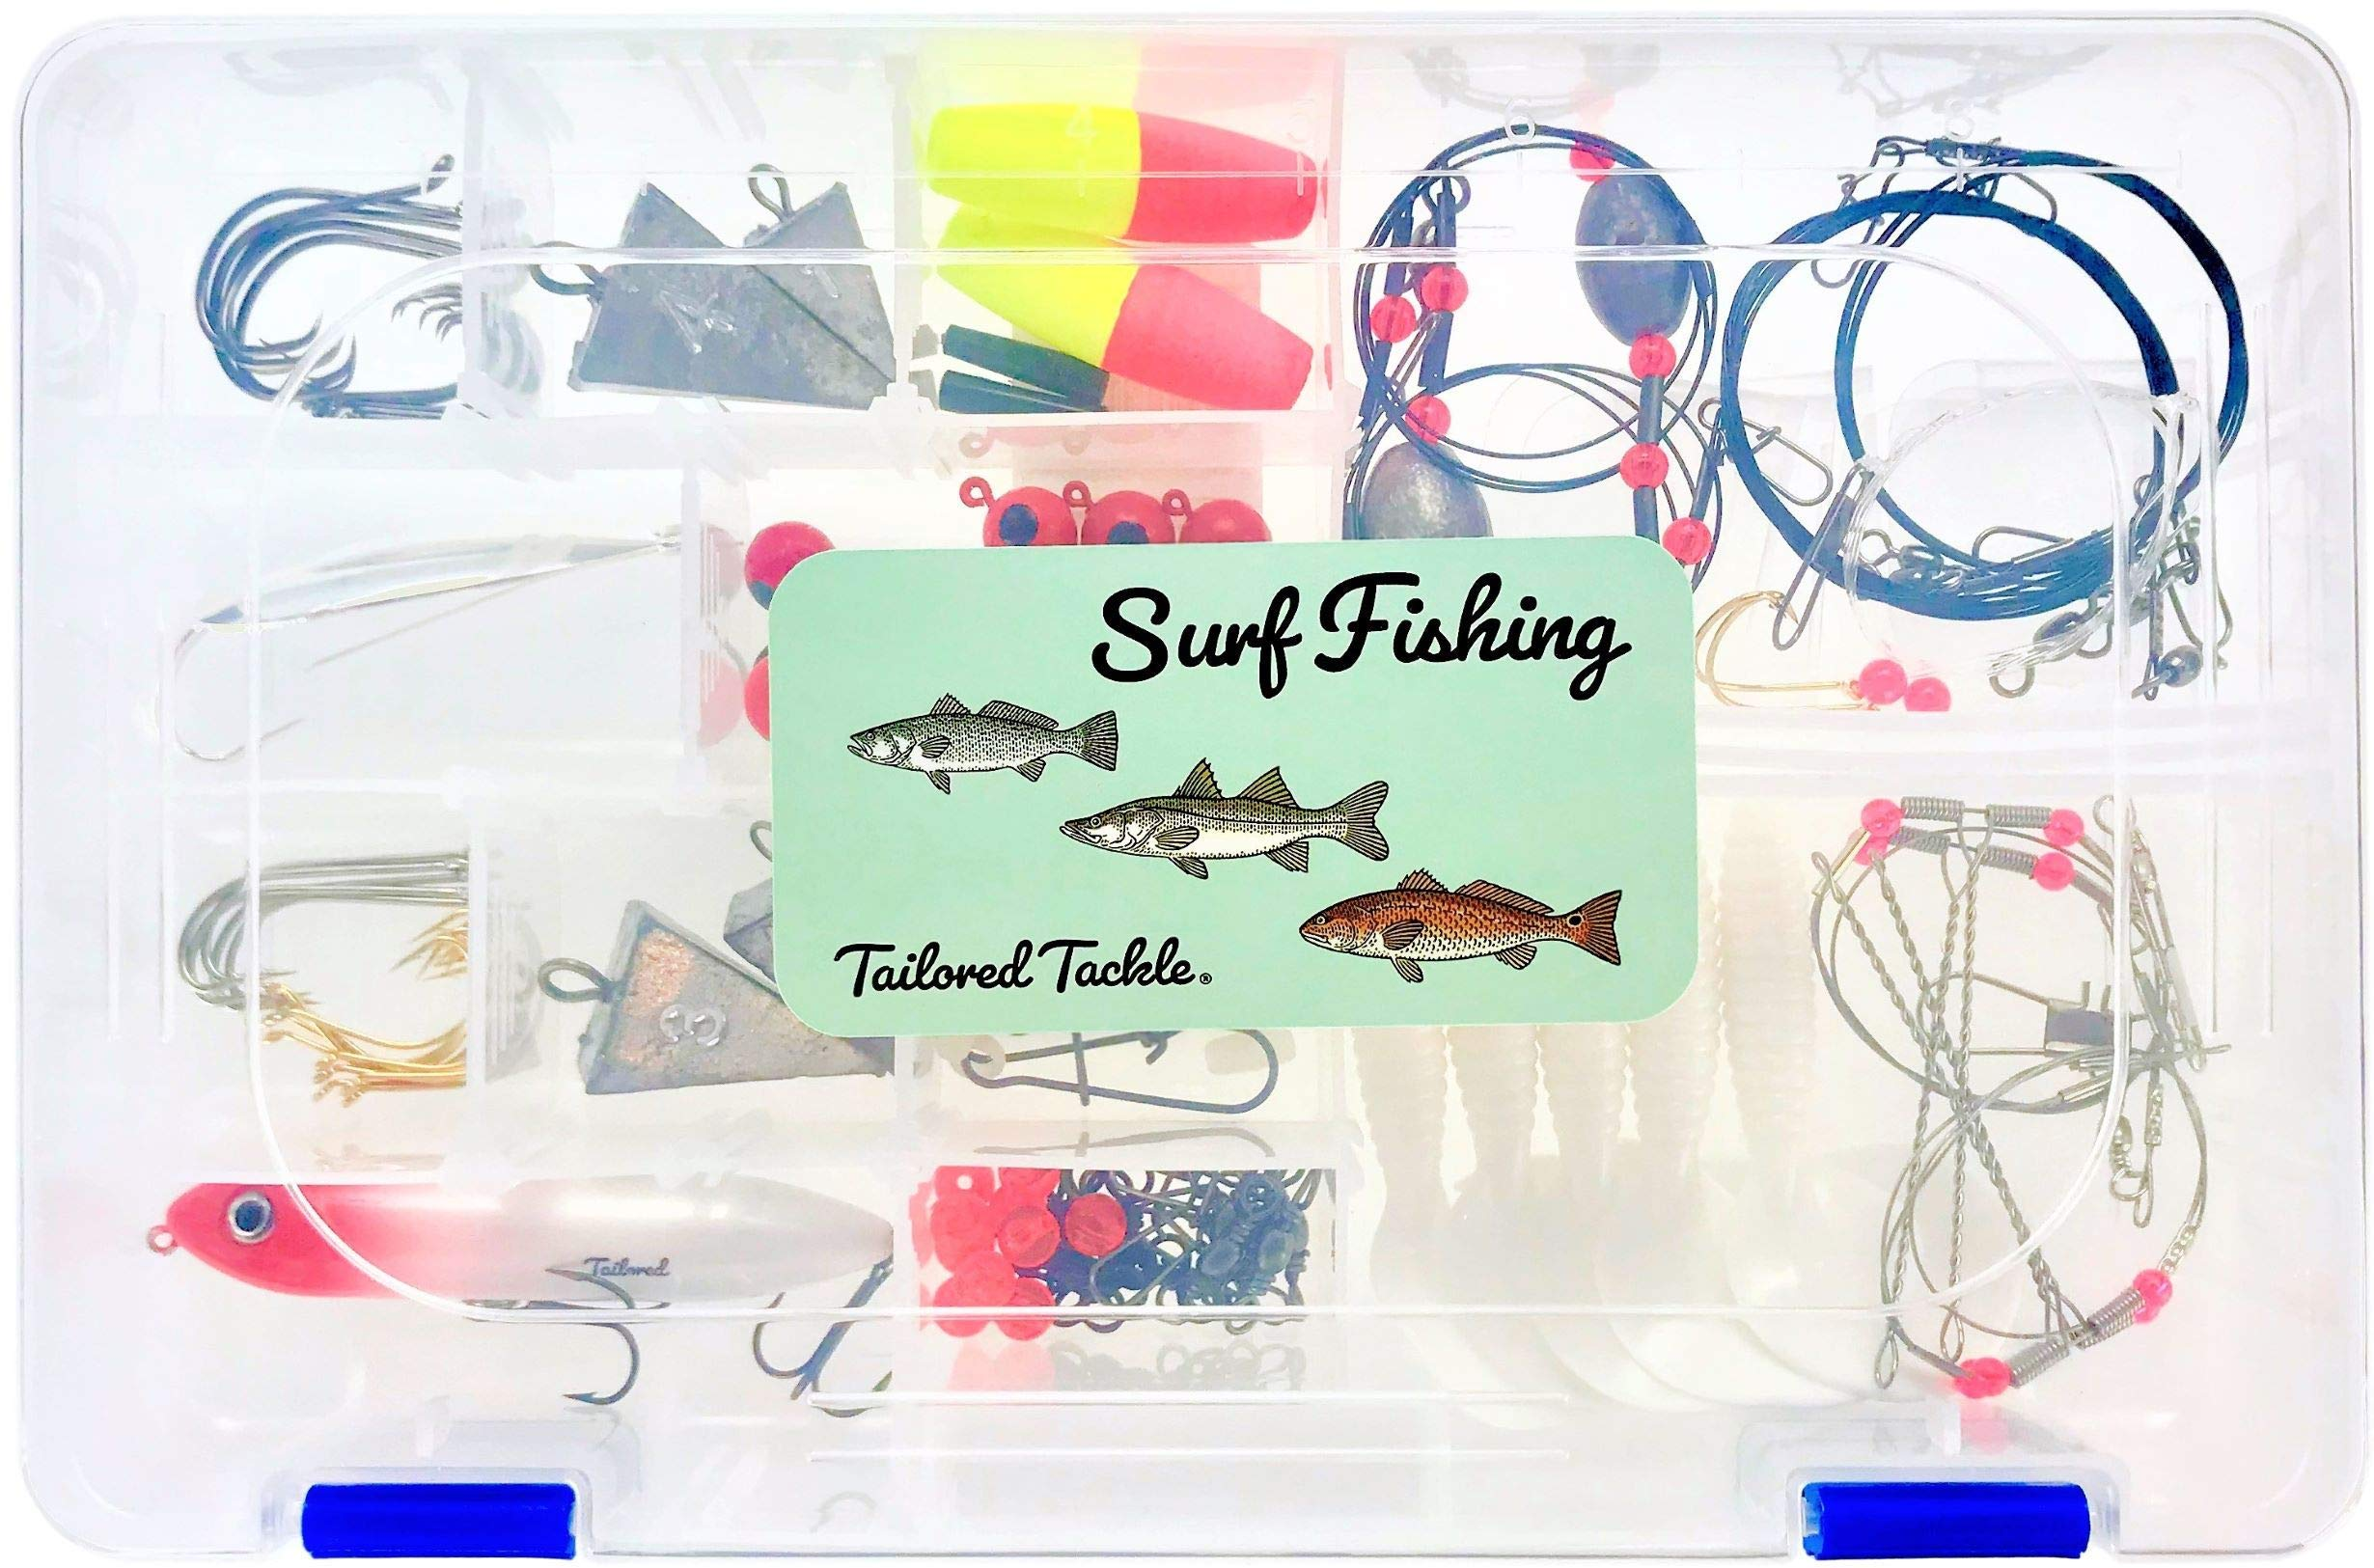 Tailored Tackle Saltwater Surf Fishing Kit 82 Pc Tackle Box with Tackle Included | Surf Fishing Rigs & Saltwater Fishing Lures | Hooks Leaders Swivels for Salt Beach Gear Equipment by Tailored Tackle